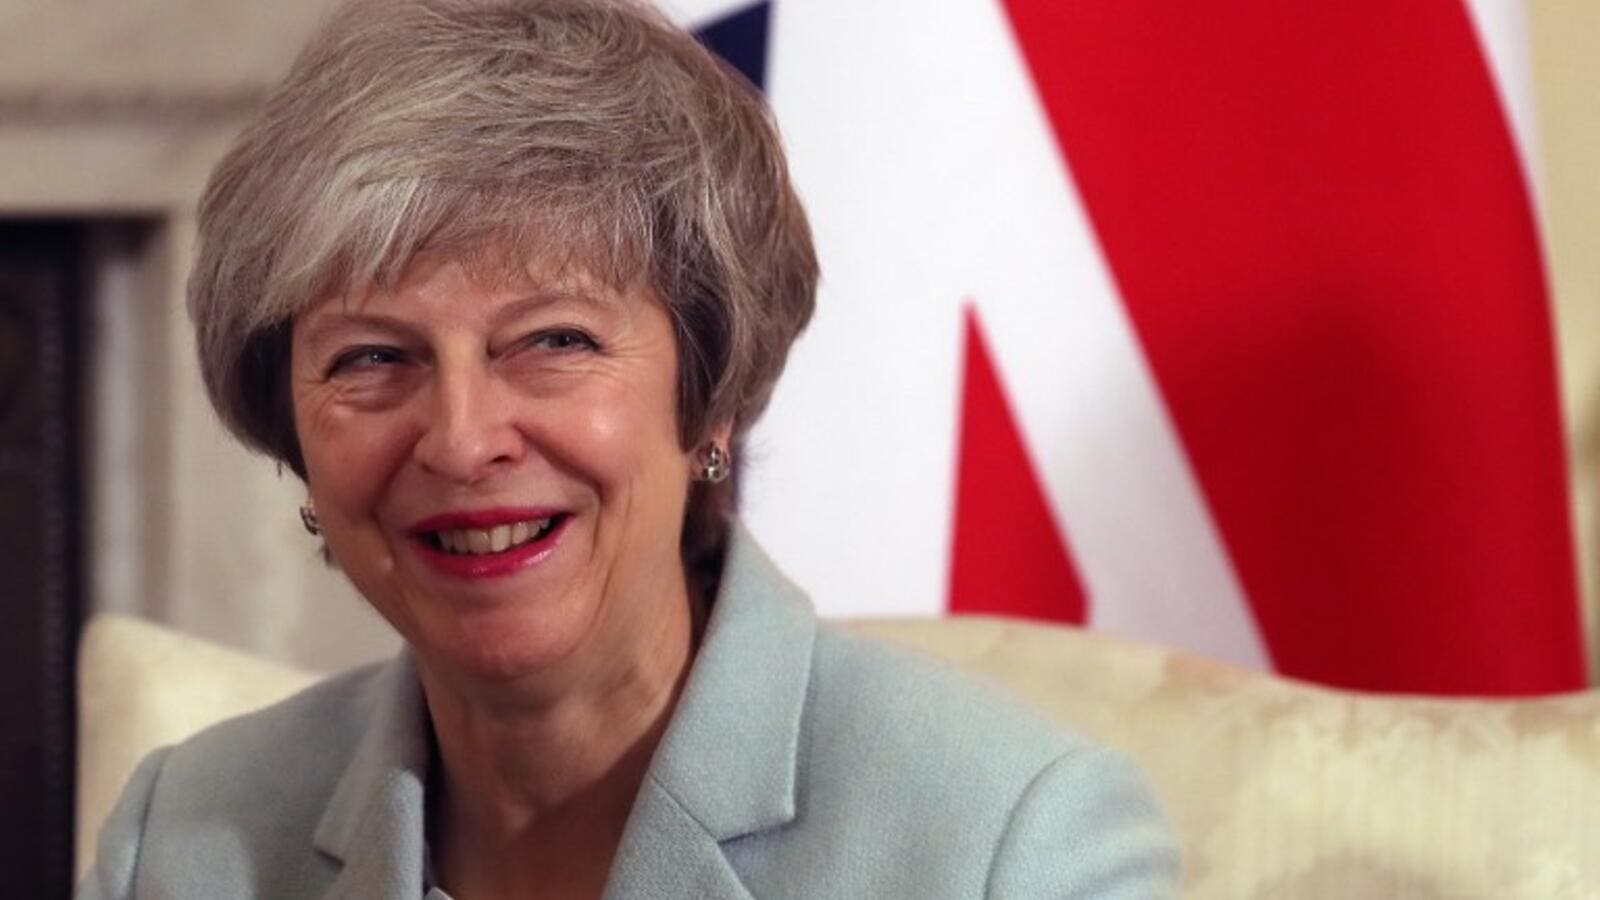 Britain's Prime Minister Theresa May reacts during her meeting with Malta's Prime Minister Joseph Muscat inside 10 Downing Street in central London, on February 11, 2019. (AFP / File Photo)